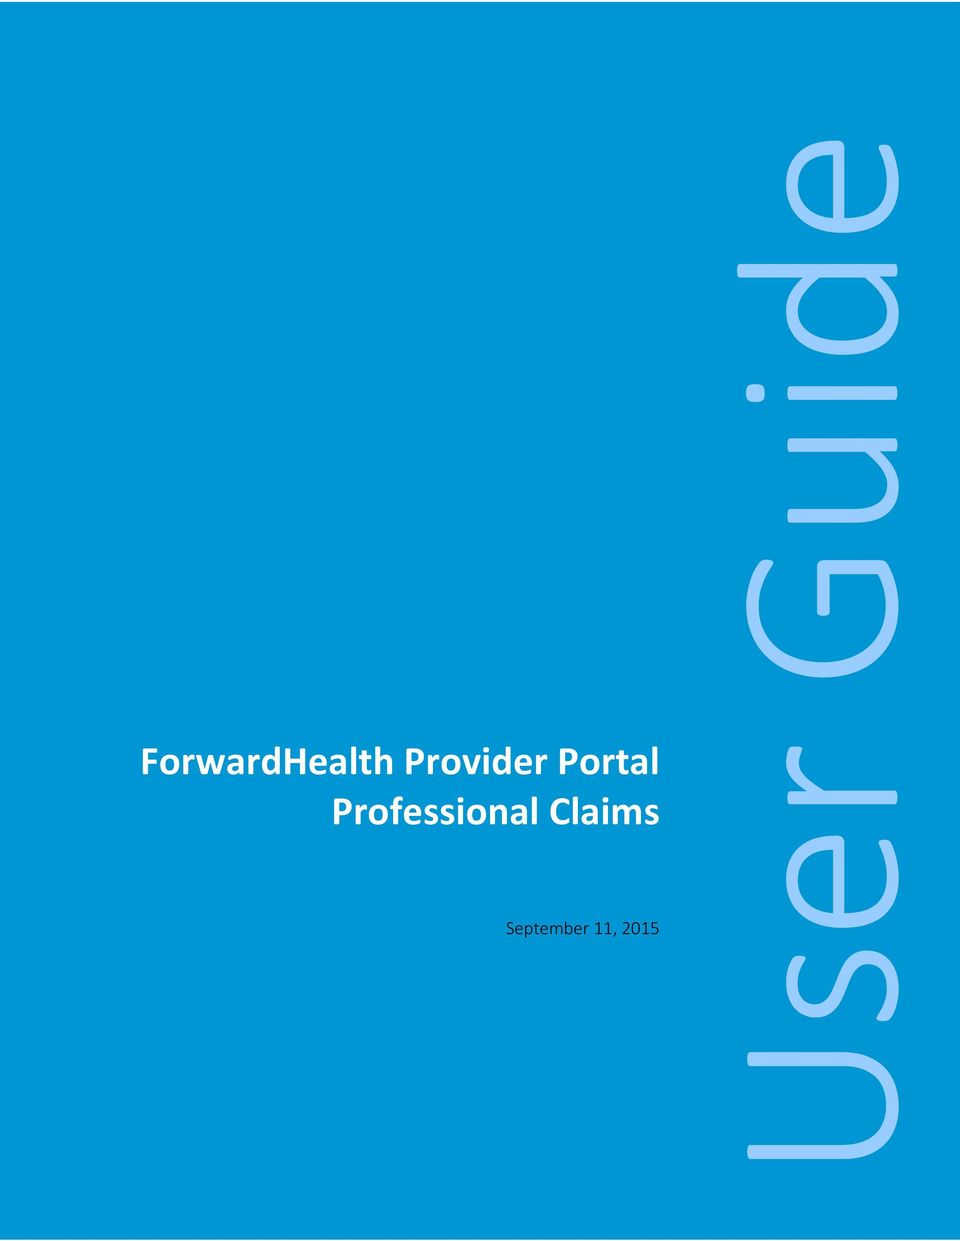 ForwardHealth Provider Portal Professional Claims - PDF